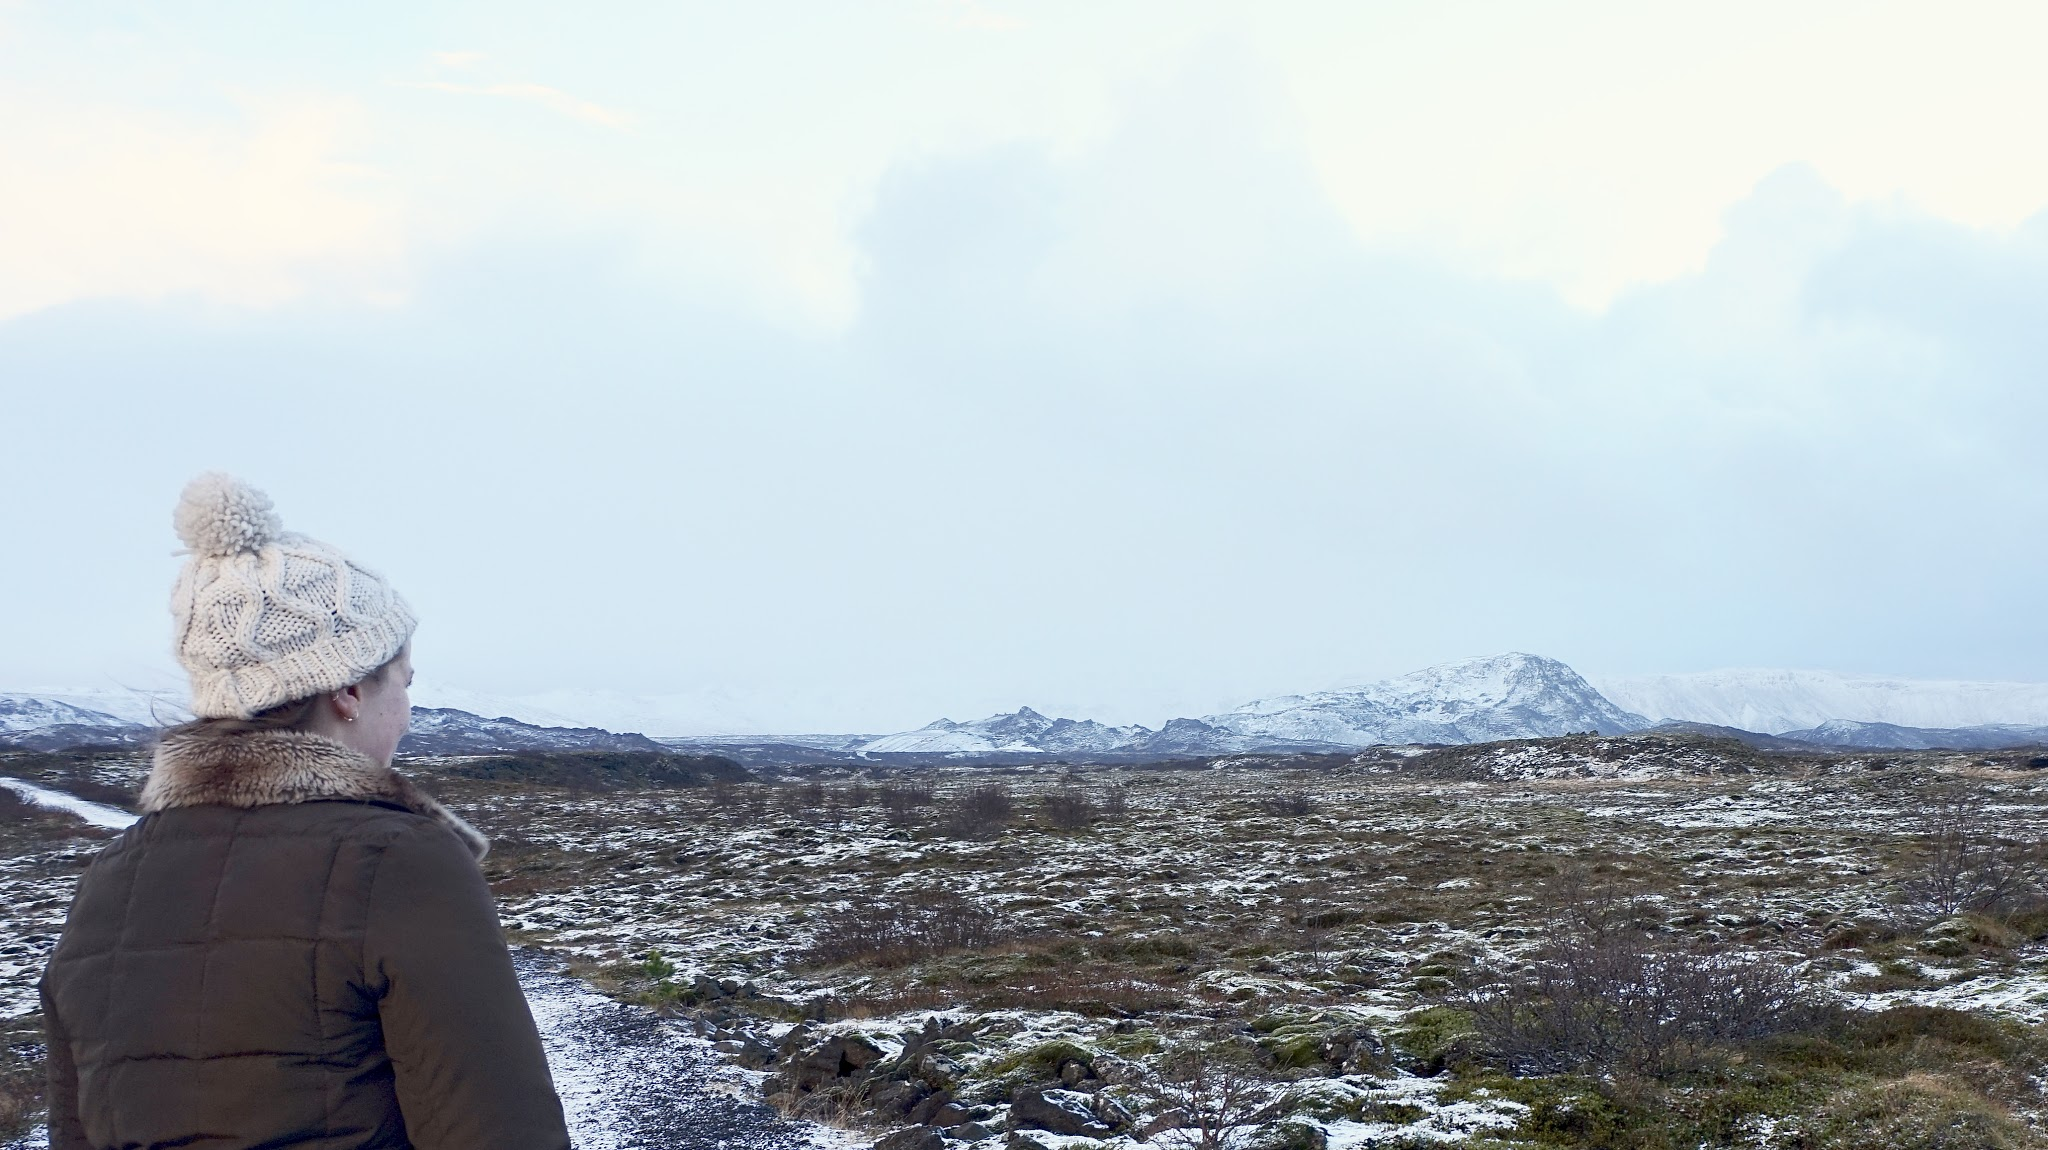 woman in bobble hat looking out onto snowy mountains